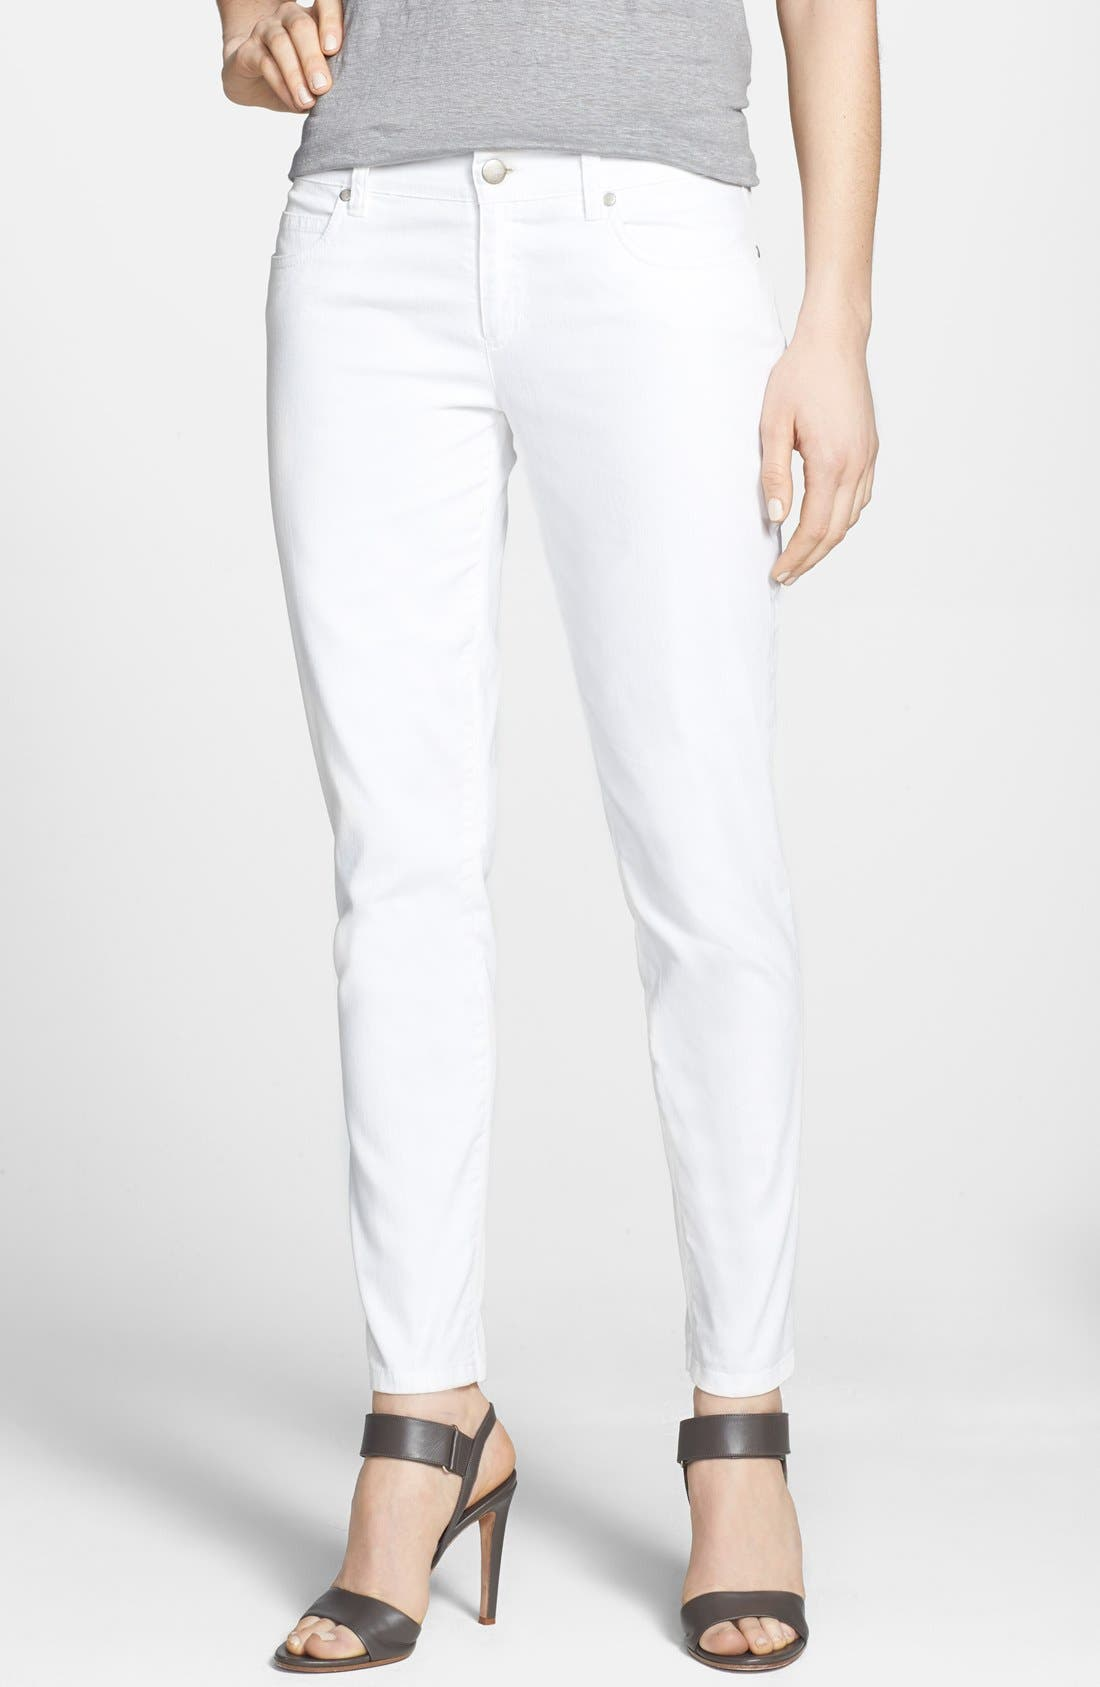 Main Image - Eileen Fisher Stretch Denim Ankle Skinny Jeans (White) (Regular & Petite)